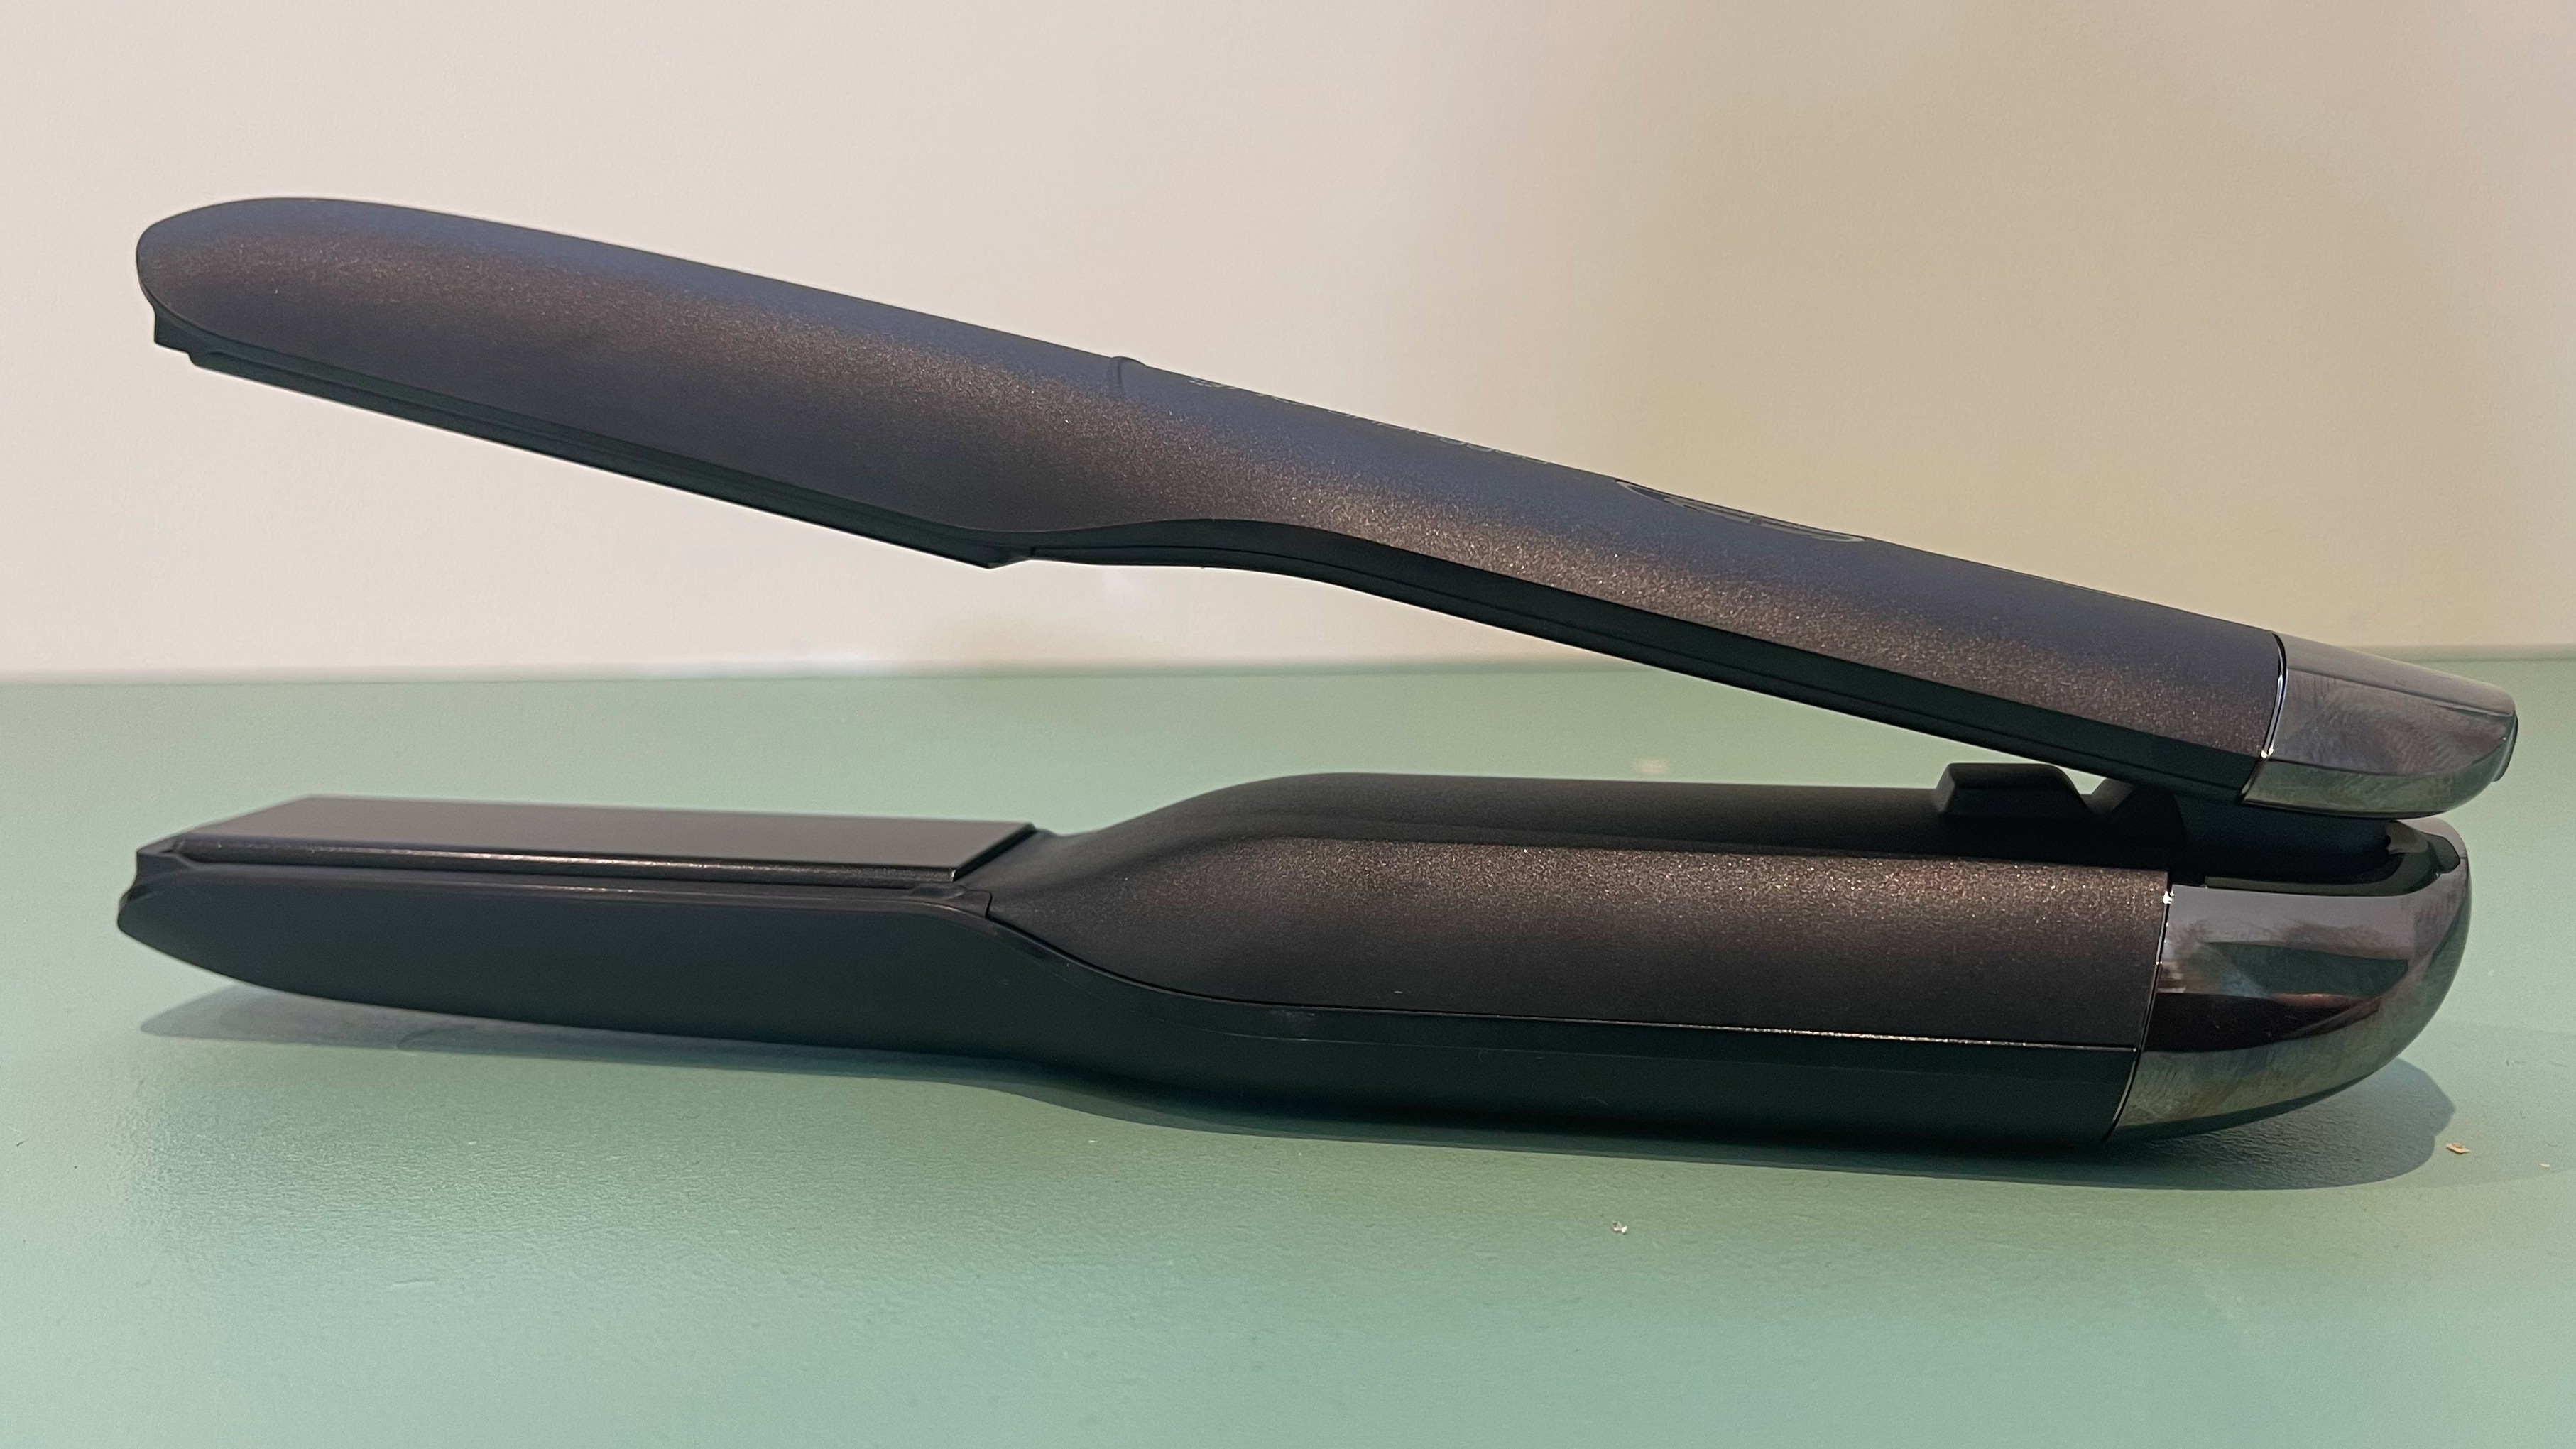 The GHD Unplugged on a dressing table